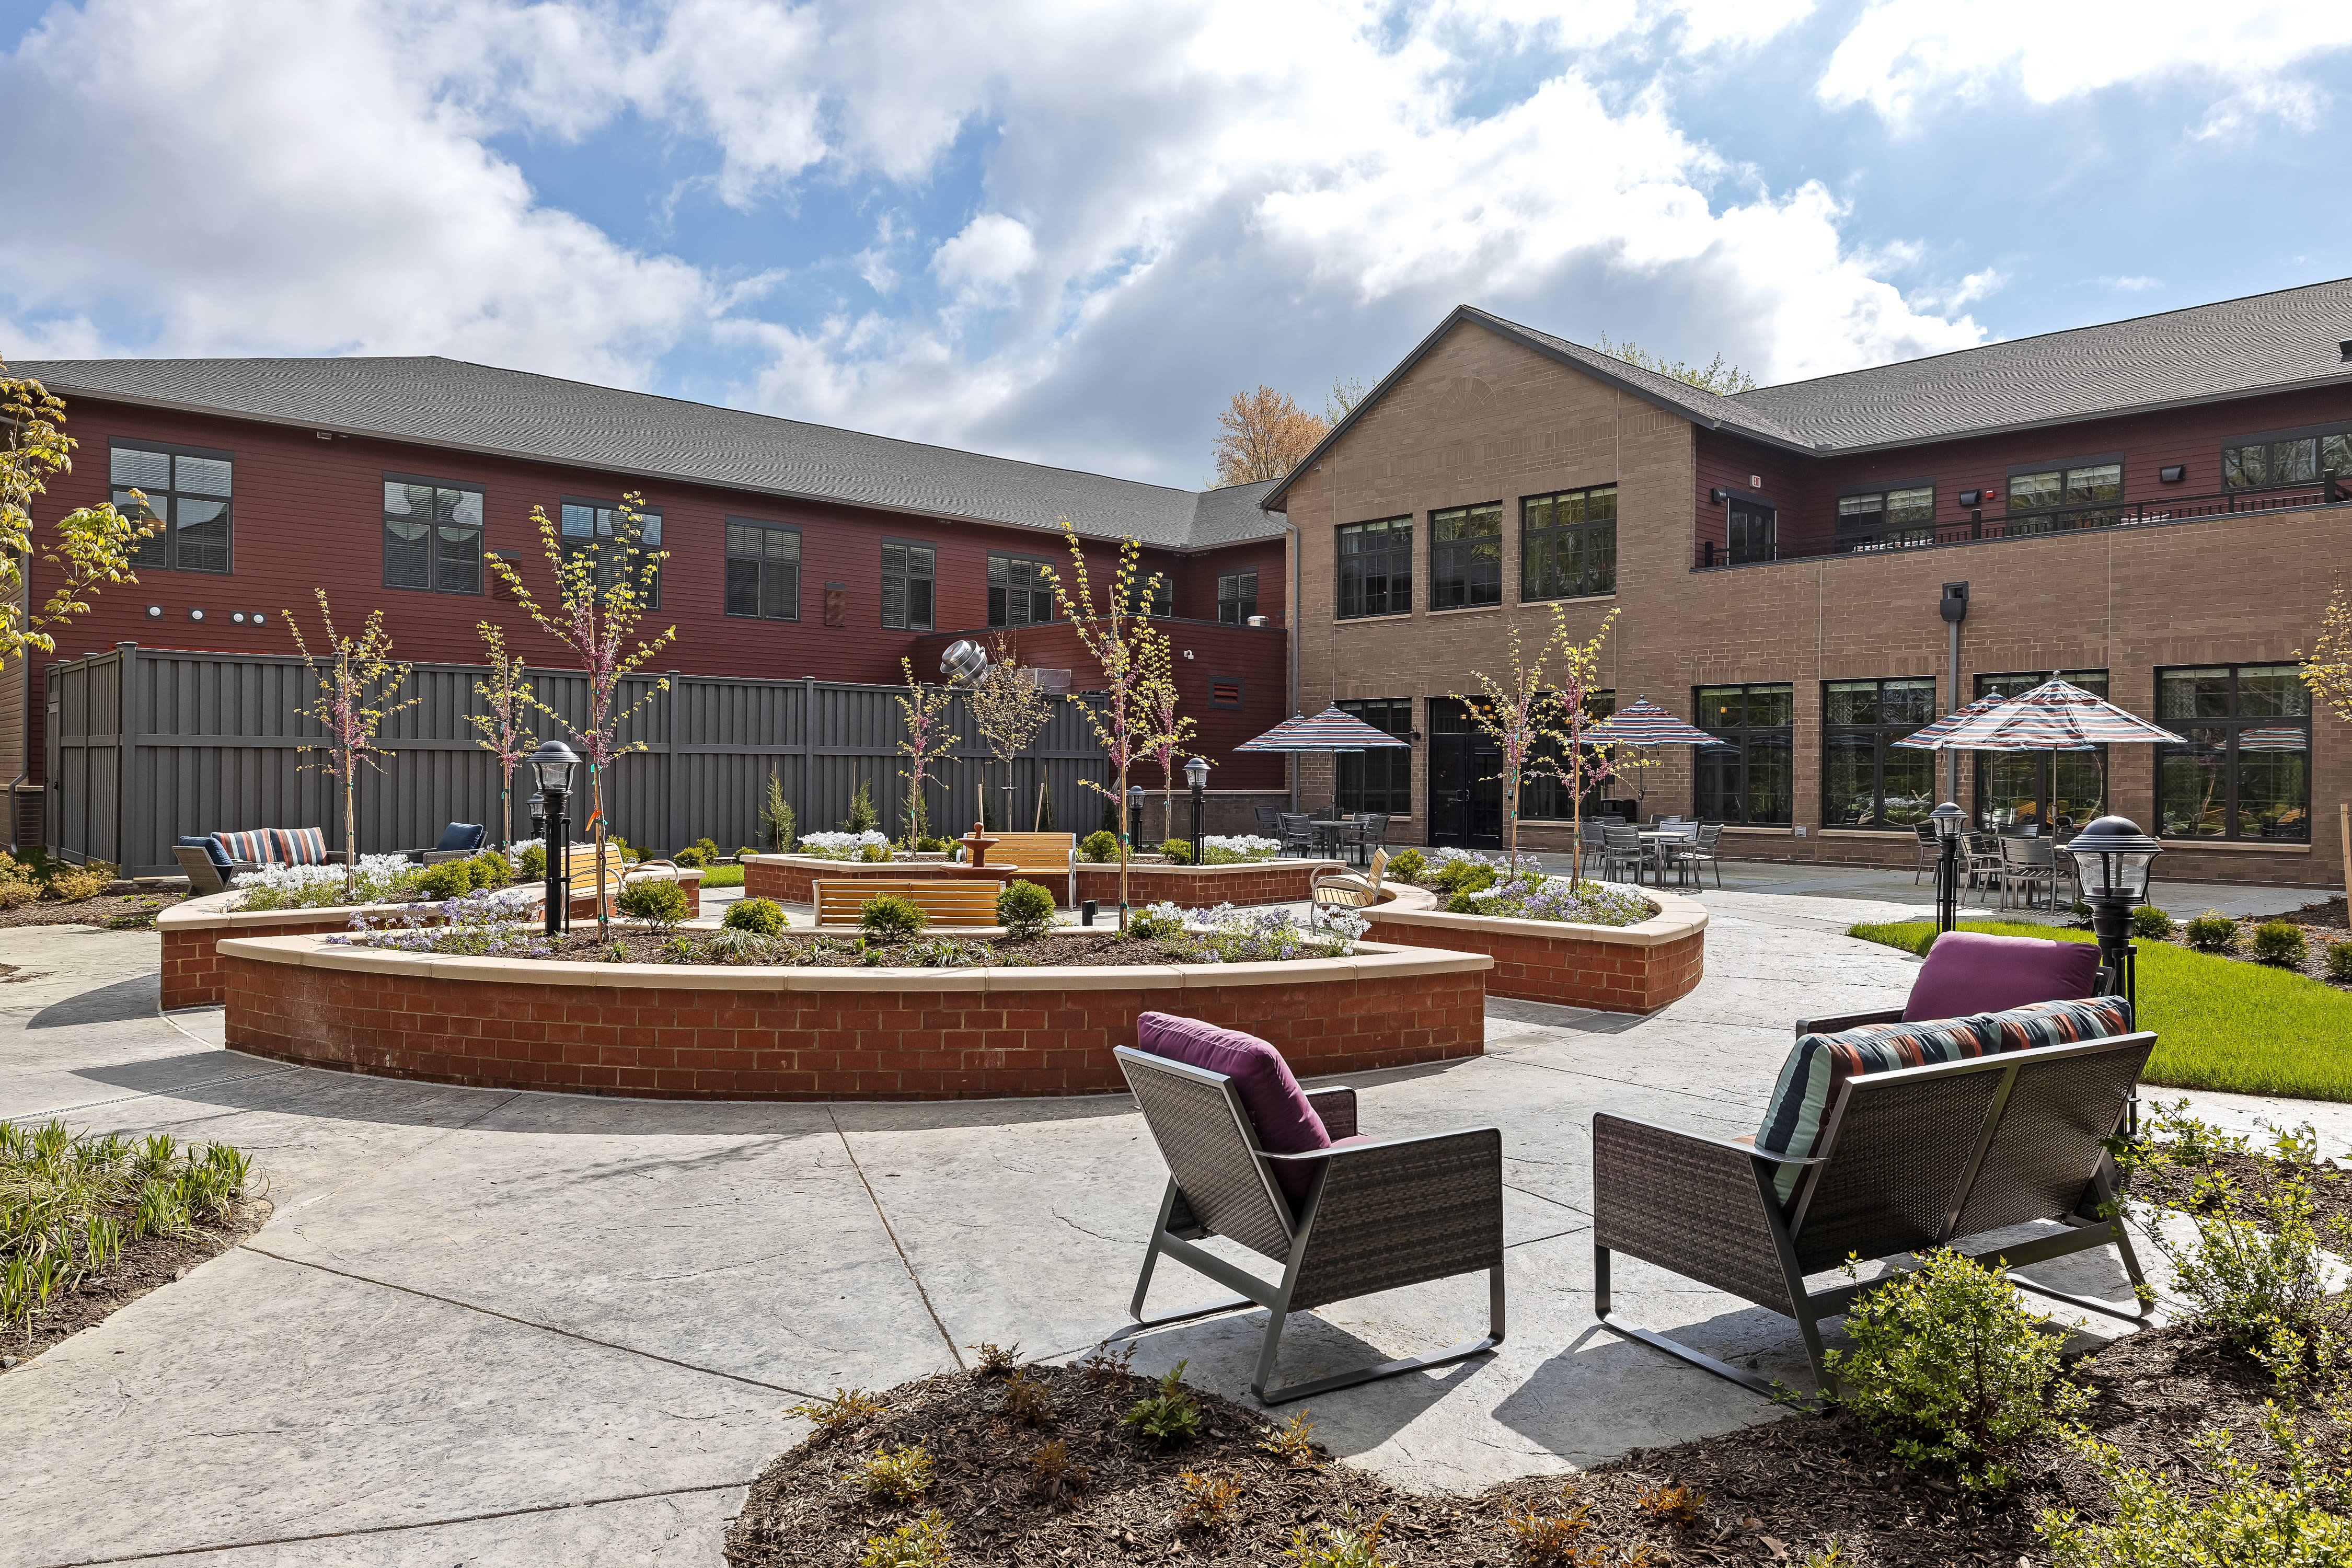 Courtyard with benches at Anthology of Midlothian in North Chesterfield, Virginia.